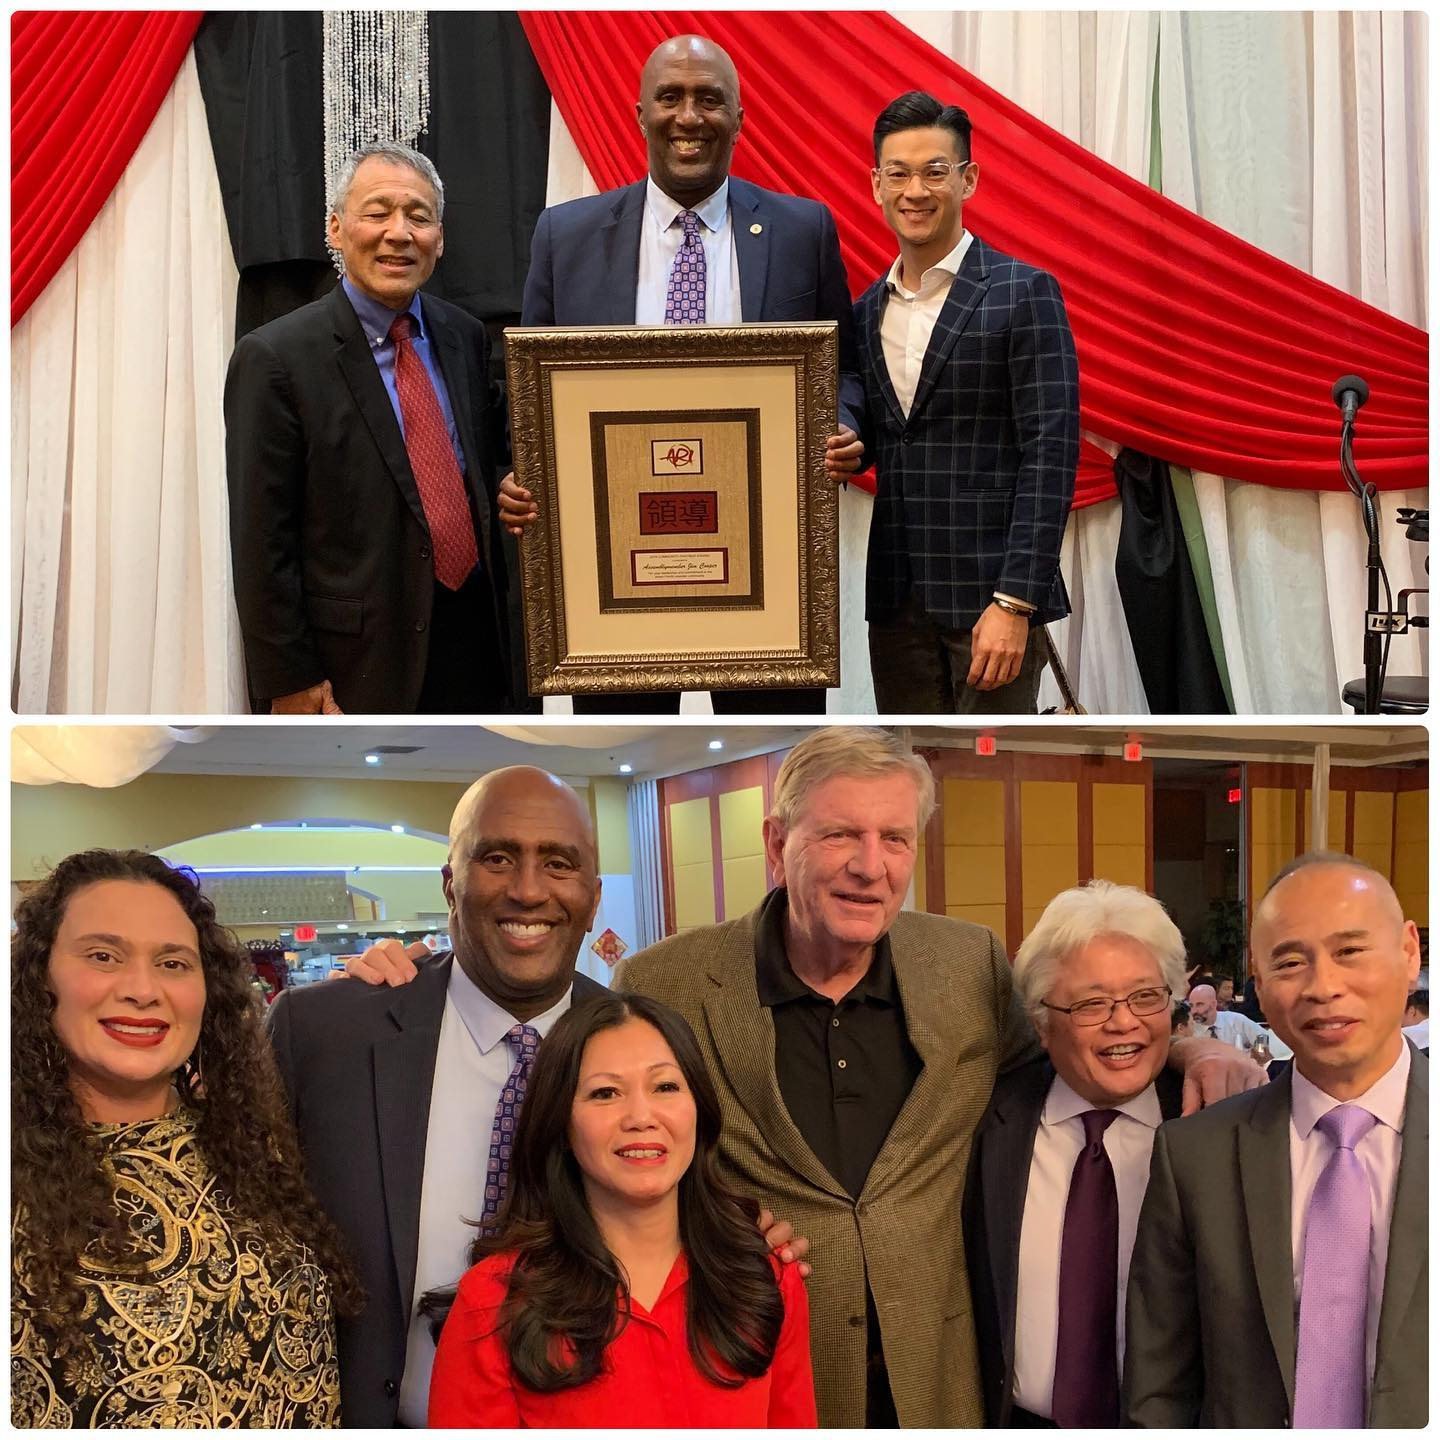 It was such a privilege to receive a community service award from Asian Resources Inc. The surprise presentation by my friend and colleague, Assemblymember Evan Low (who did more roasting than presenting), was unforgettable.